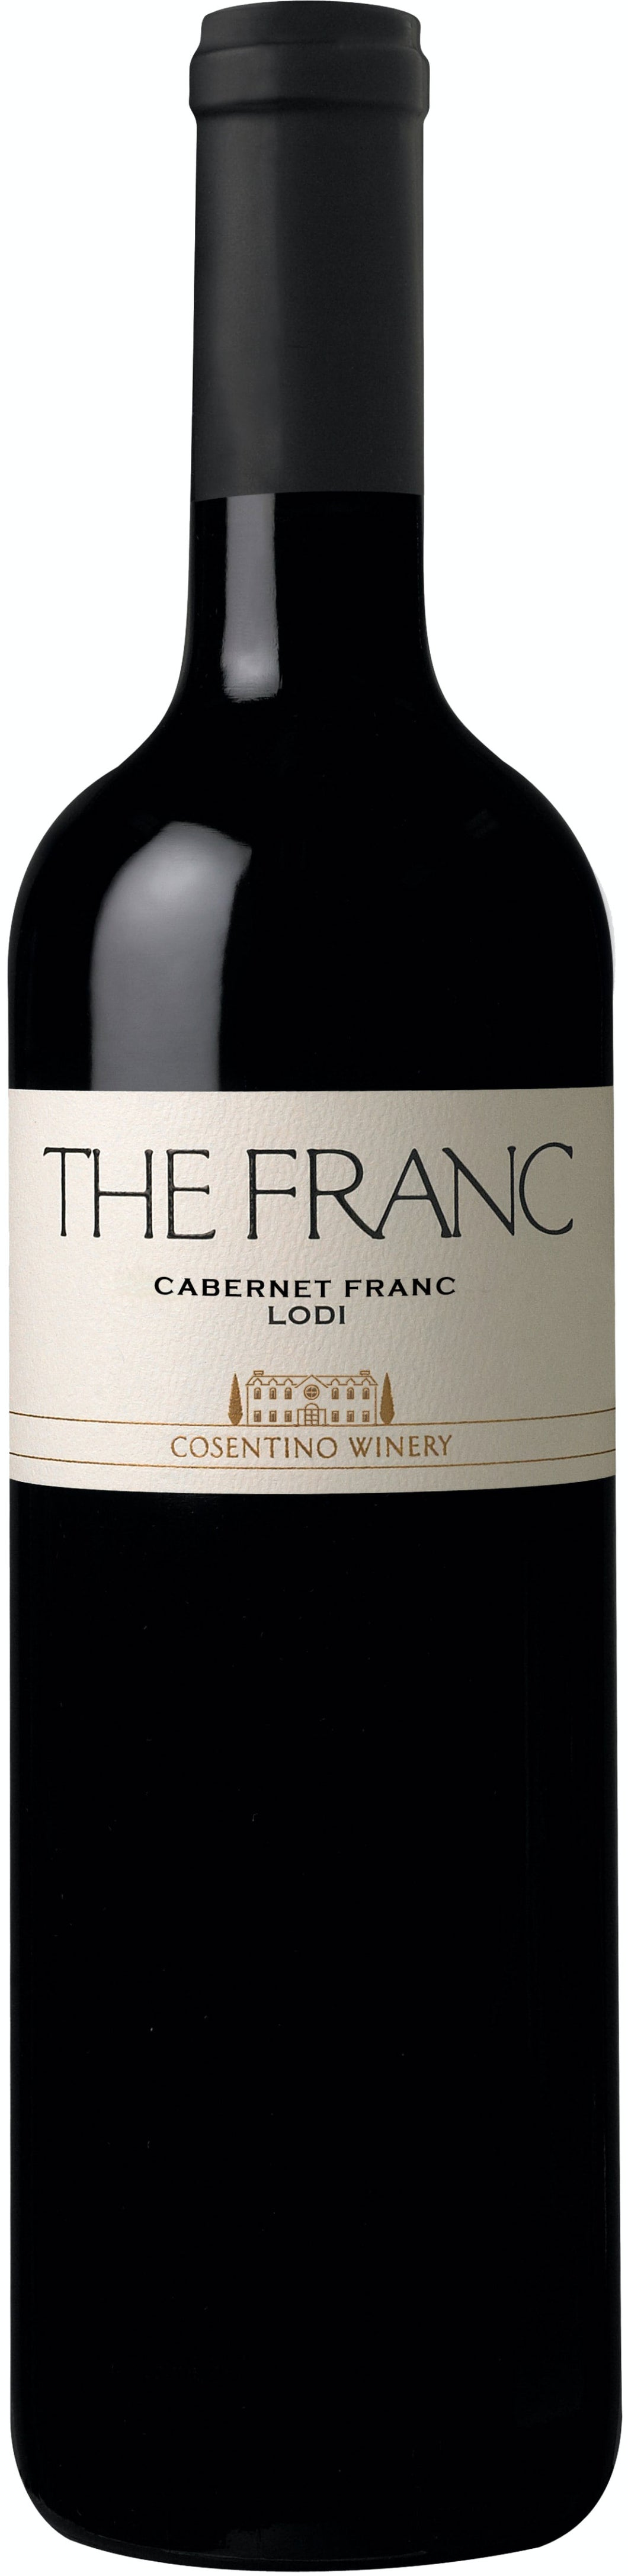 Cosentino Winery Cabernet Franc The Franc 2018